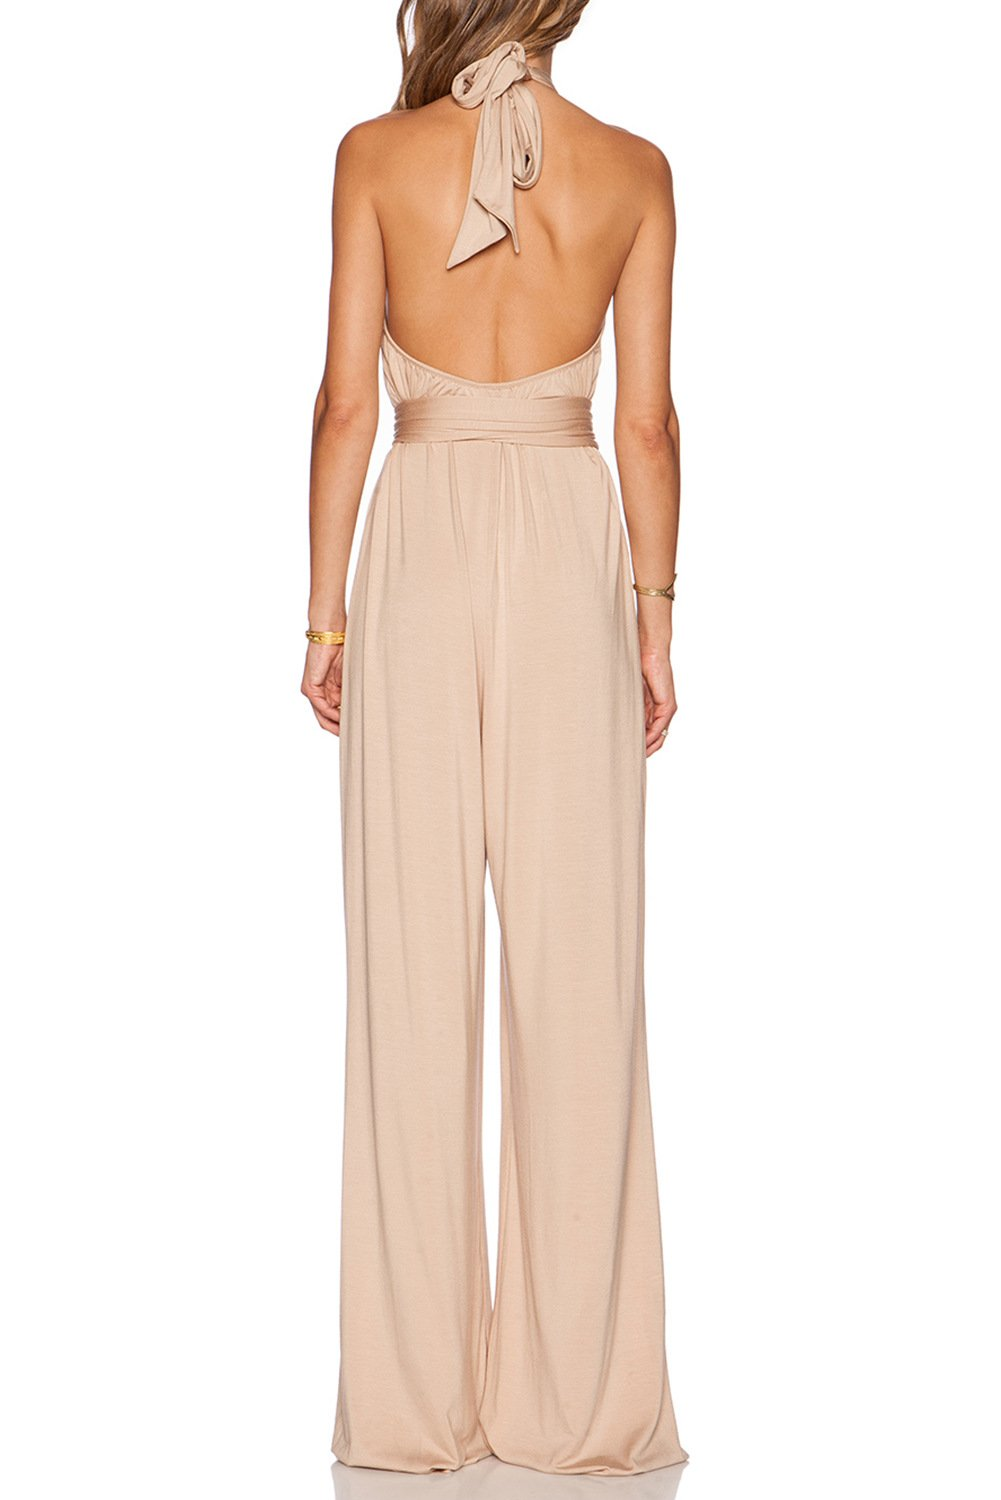 MARSEN Women's Halter Backless Rompers Long High Neck Party Jumpsuits with Belt Nude Size 6 by MARSEN (Image #2)